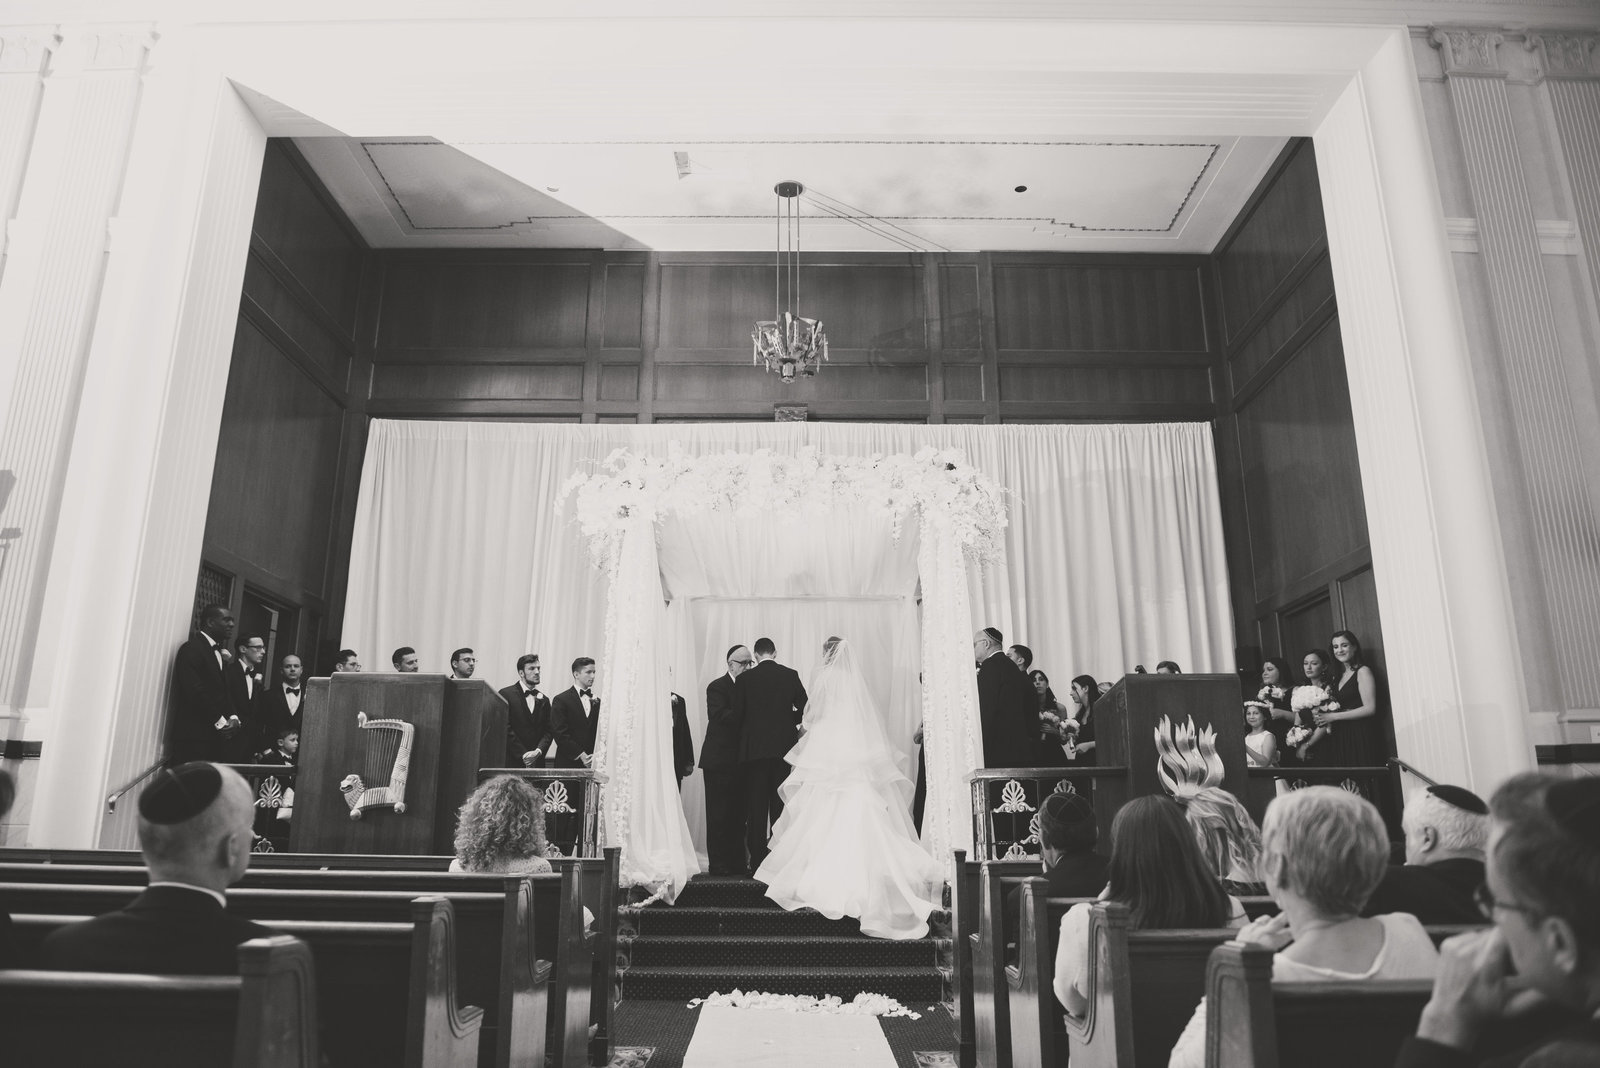 Black and white photo of a Jewish ceremony